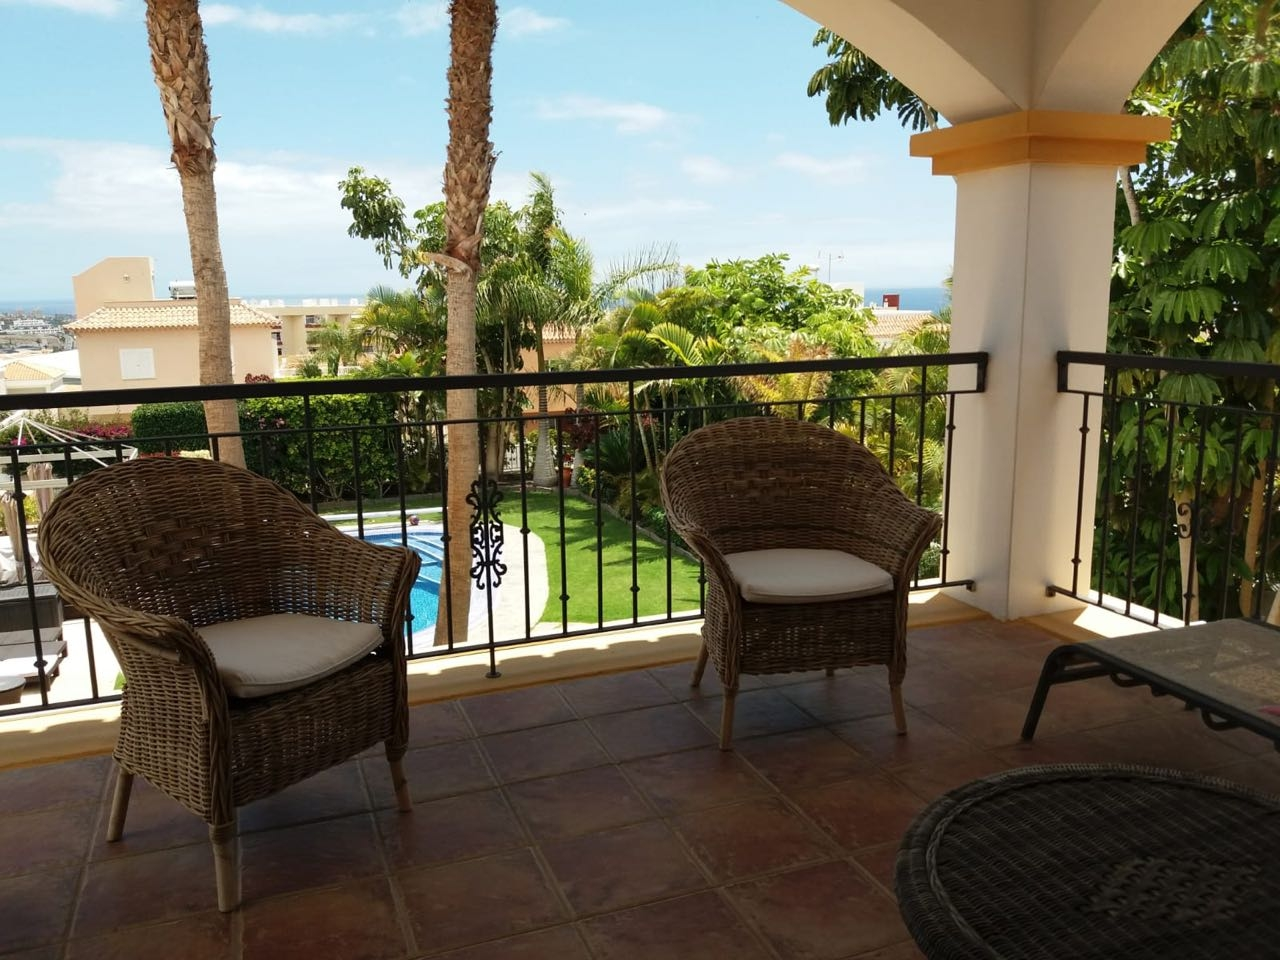 Properties for Sale in Tenerife, Canary Islands, Spain | SylkWayStar Real Estate. Luxury Villa 5 Bedrooms Madroñal. Image-24421